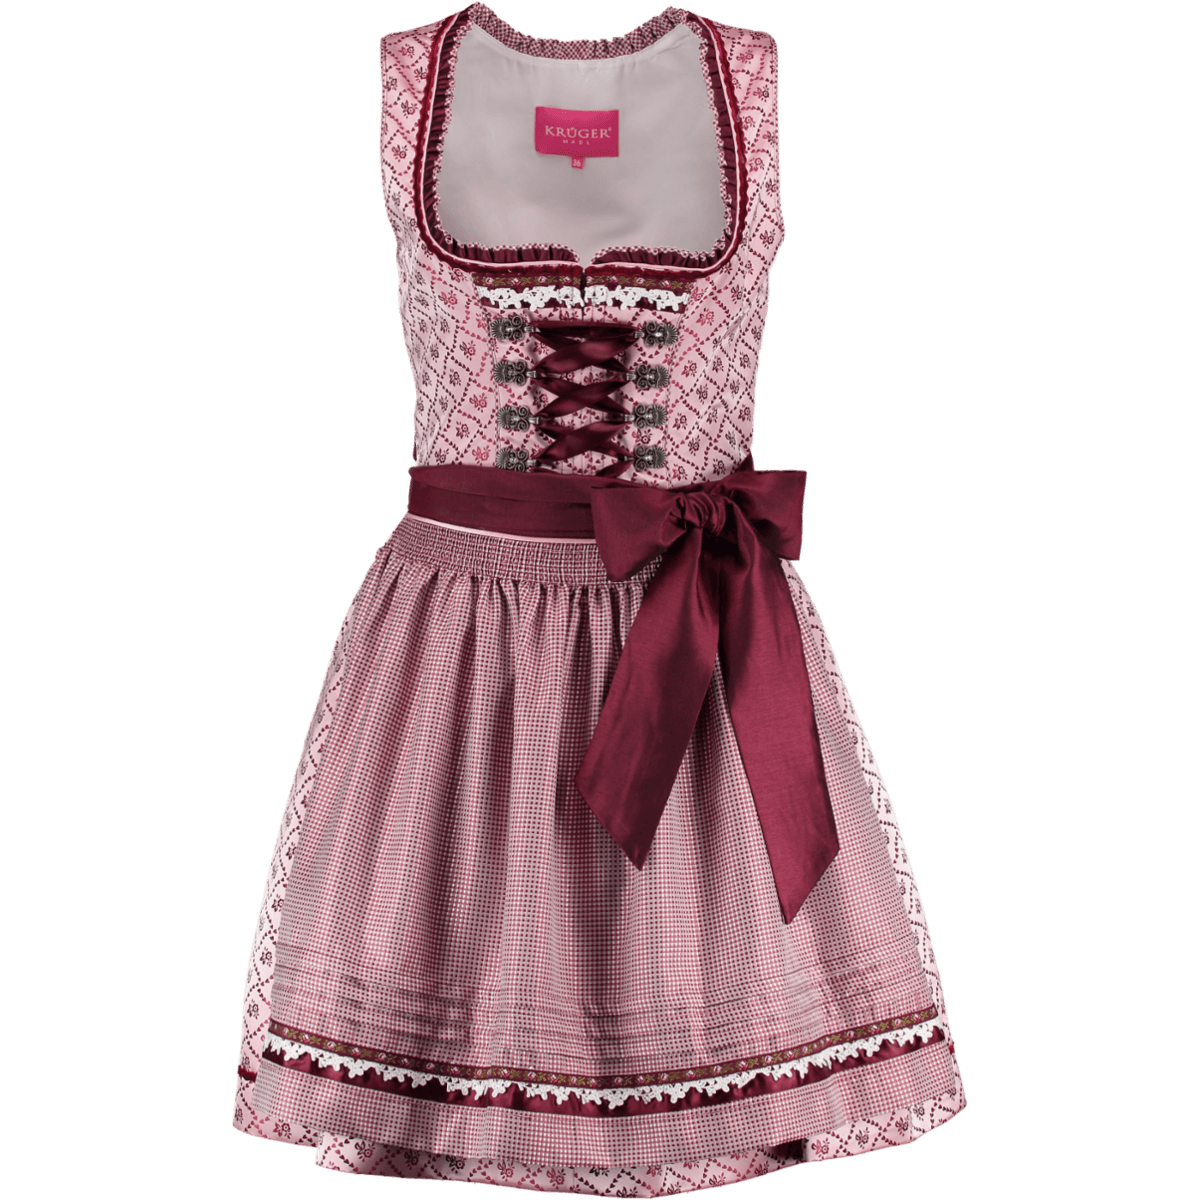 kr ger dirndl mini dirndl sandy rosa g nstig kaufen. Black Bedroom Furniture Sets. Home Design Ideas